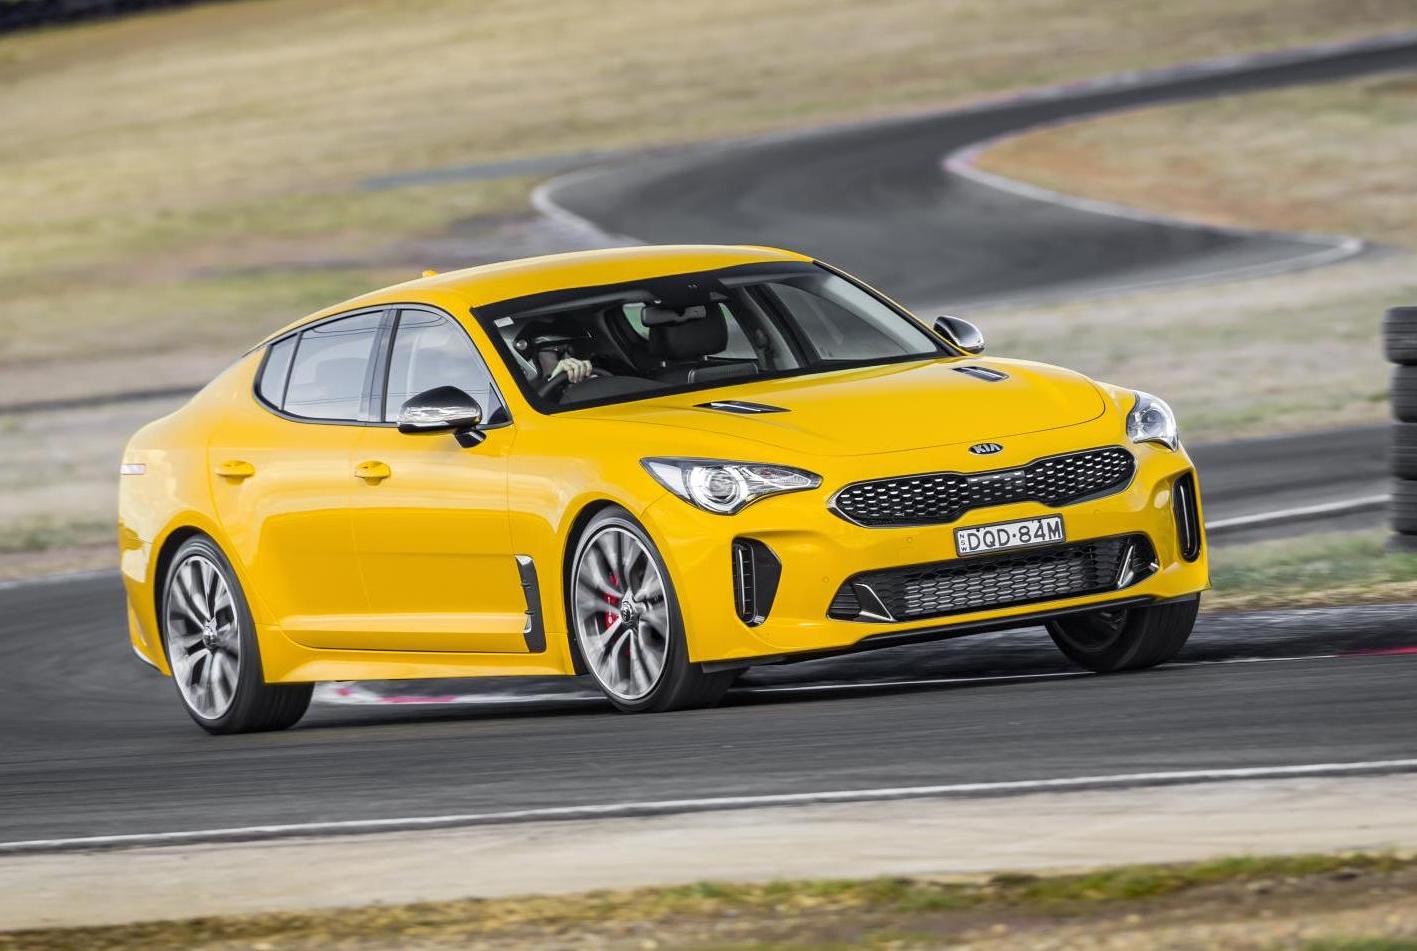 2018 kia stinger gt price.  Kia The Flagship Engine Which Is A 33litre Twinturbo V6 Churning Out  272kW And 510Nm Itu0027s Available In Three Grades Including 330S 330Si GT Inside 2018 Kia Stinger Gt Price N